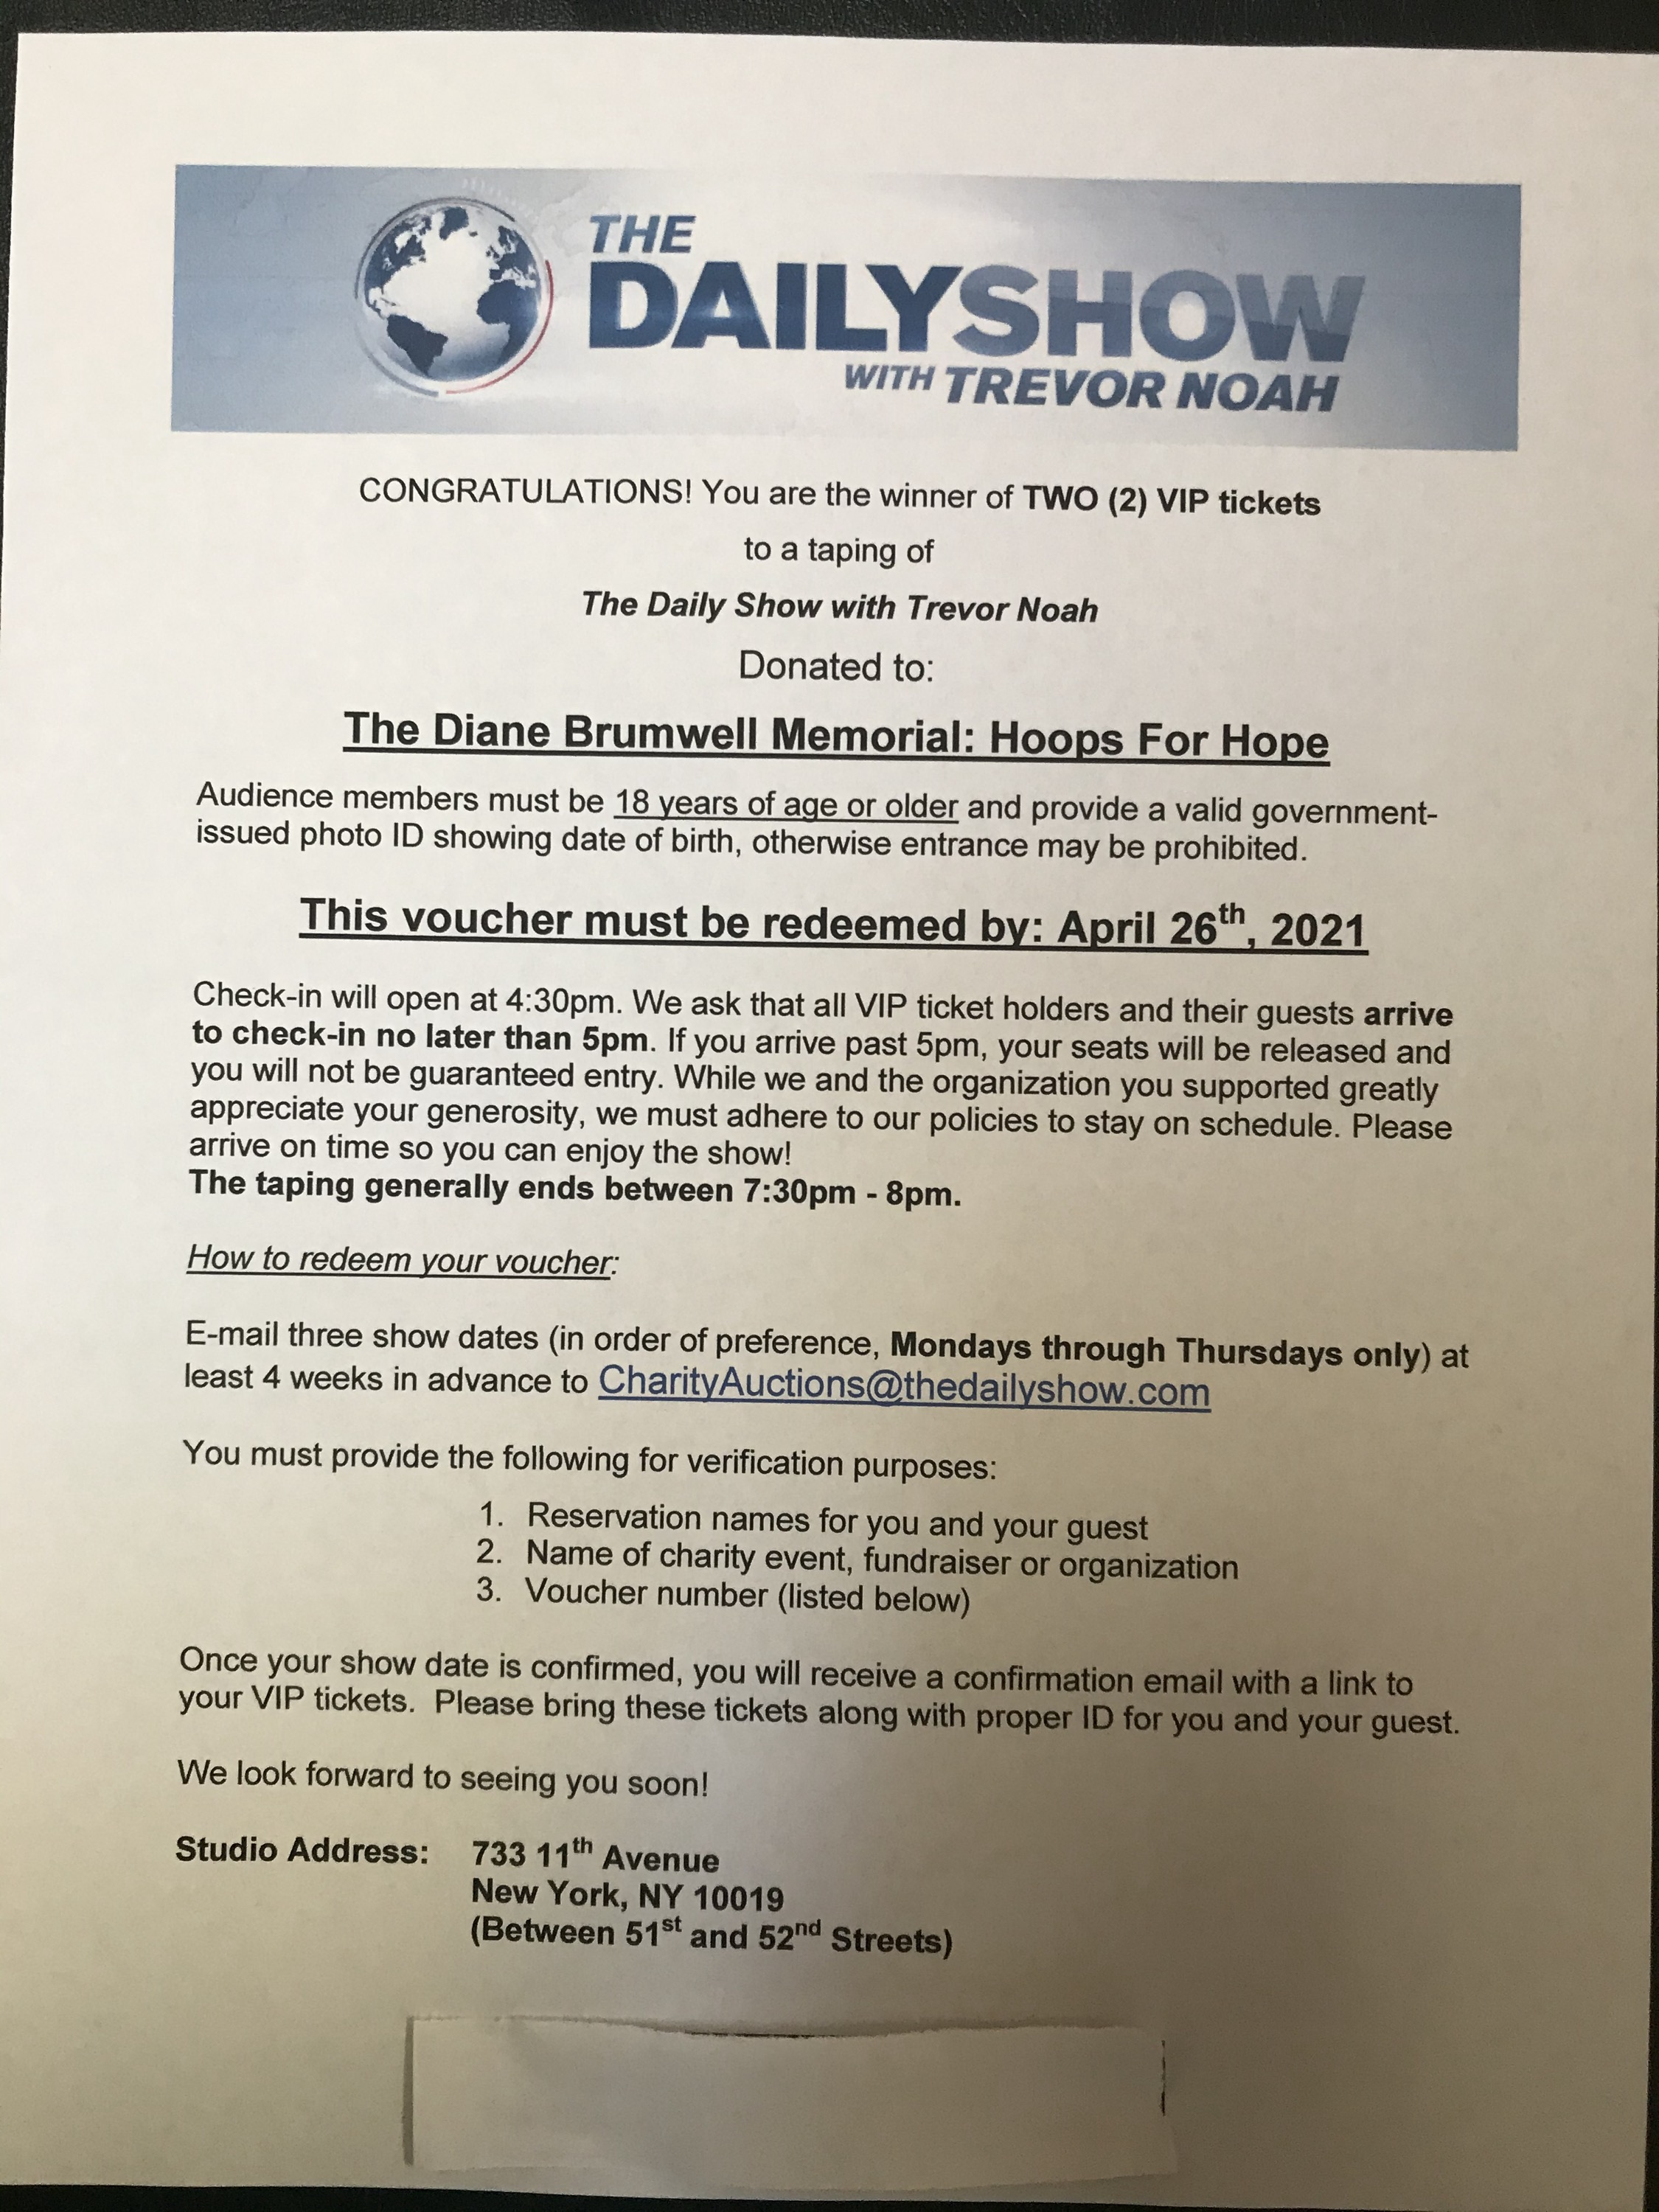 Two VIP tickets to a taping of The Daily Show with Trevor Noah!